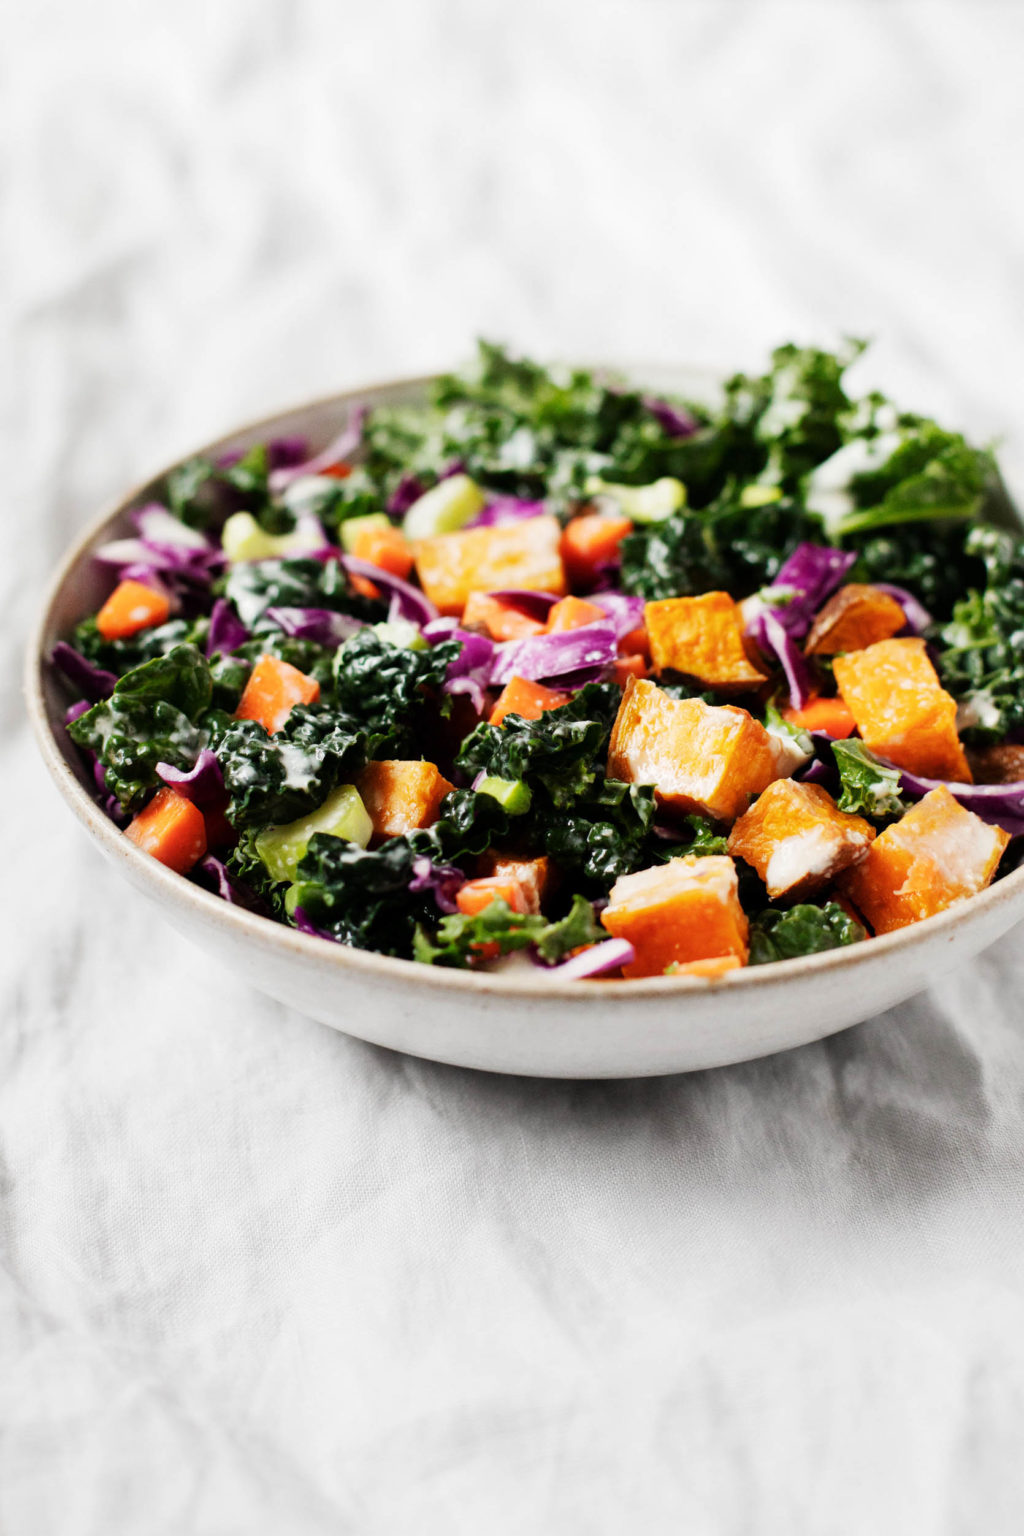 An angled photograph of a bowl of colorful winter greens and assorted vegetables.